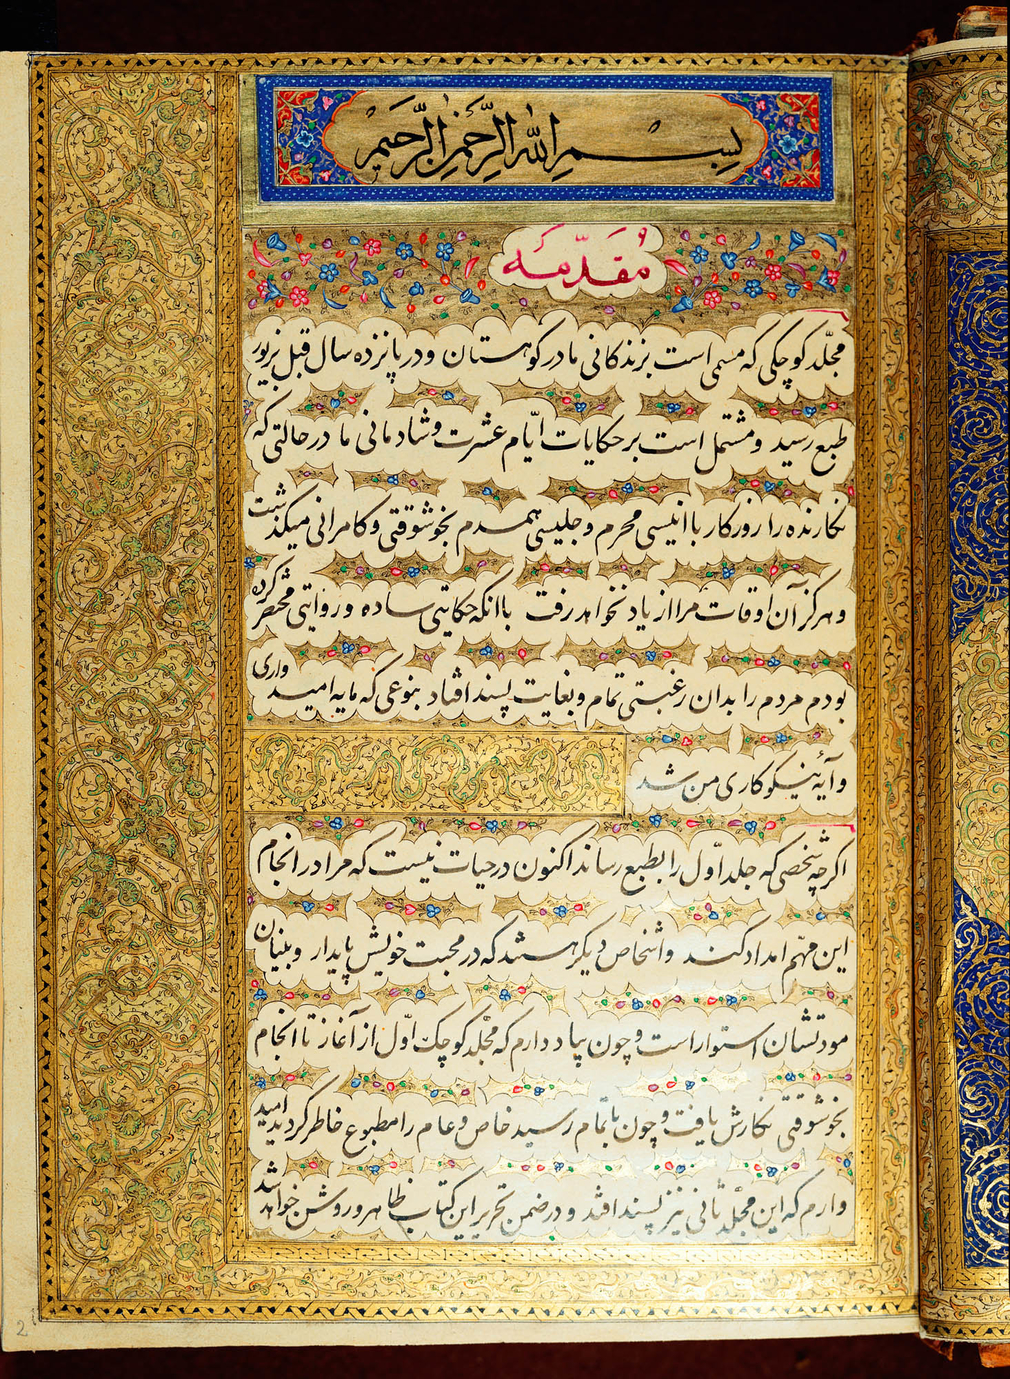 Tan-coloured calf binding, with lacquered incised gilt ornamentation on front cover, signed by Razi Taliqani and dated 1884-5. Contained within ornamental silk bag <br /><br />This is aPersian translation of Queen Victoria's 'More leaves from the jo